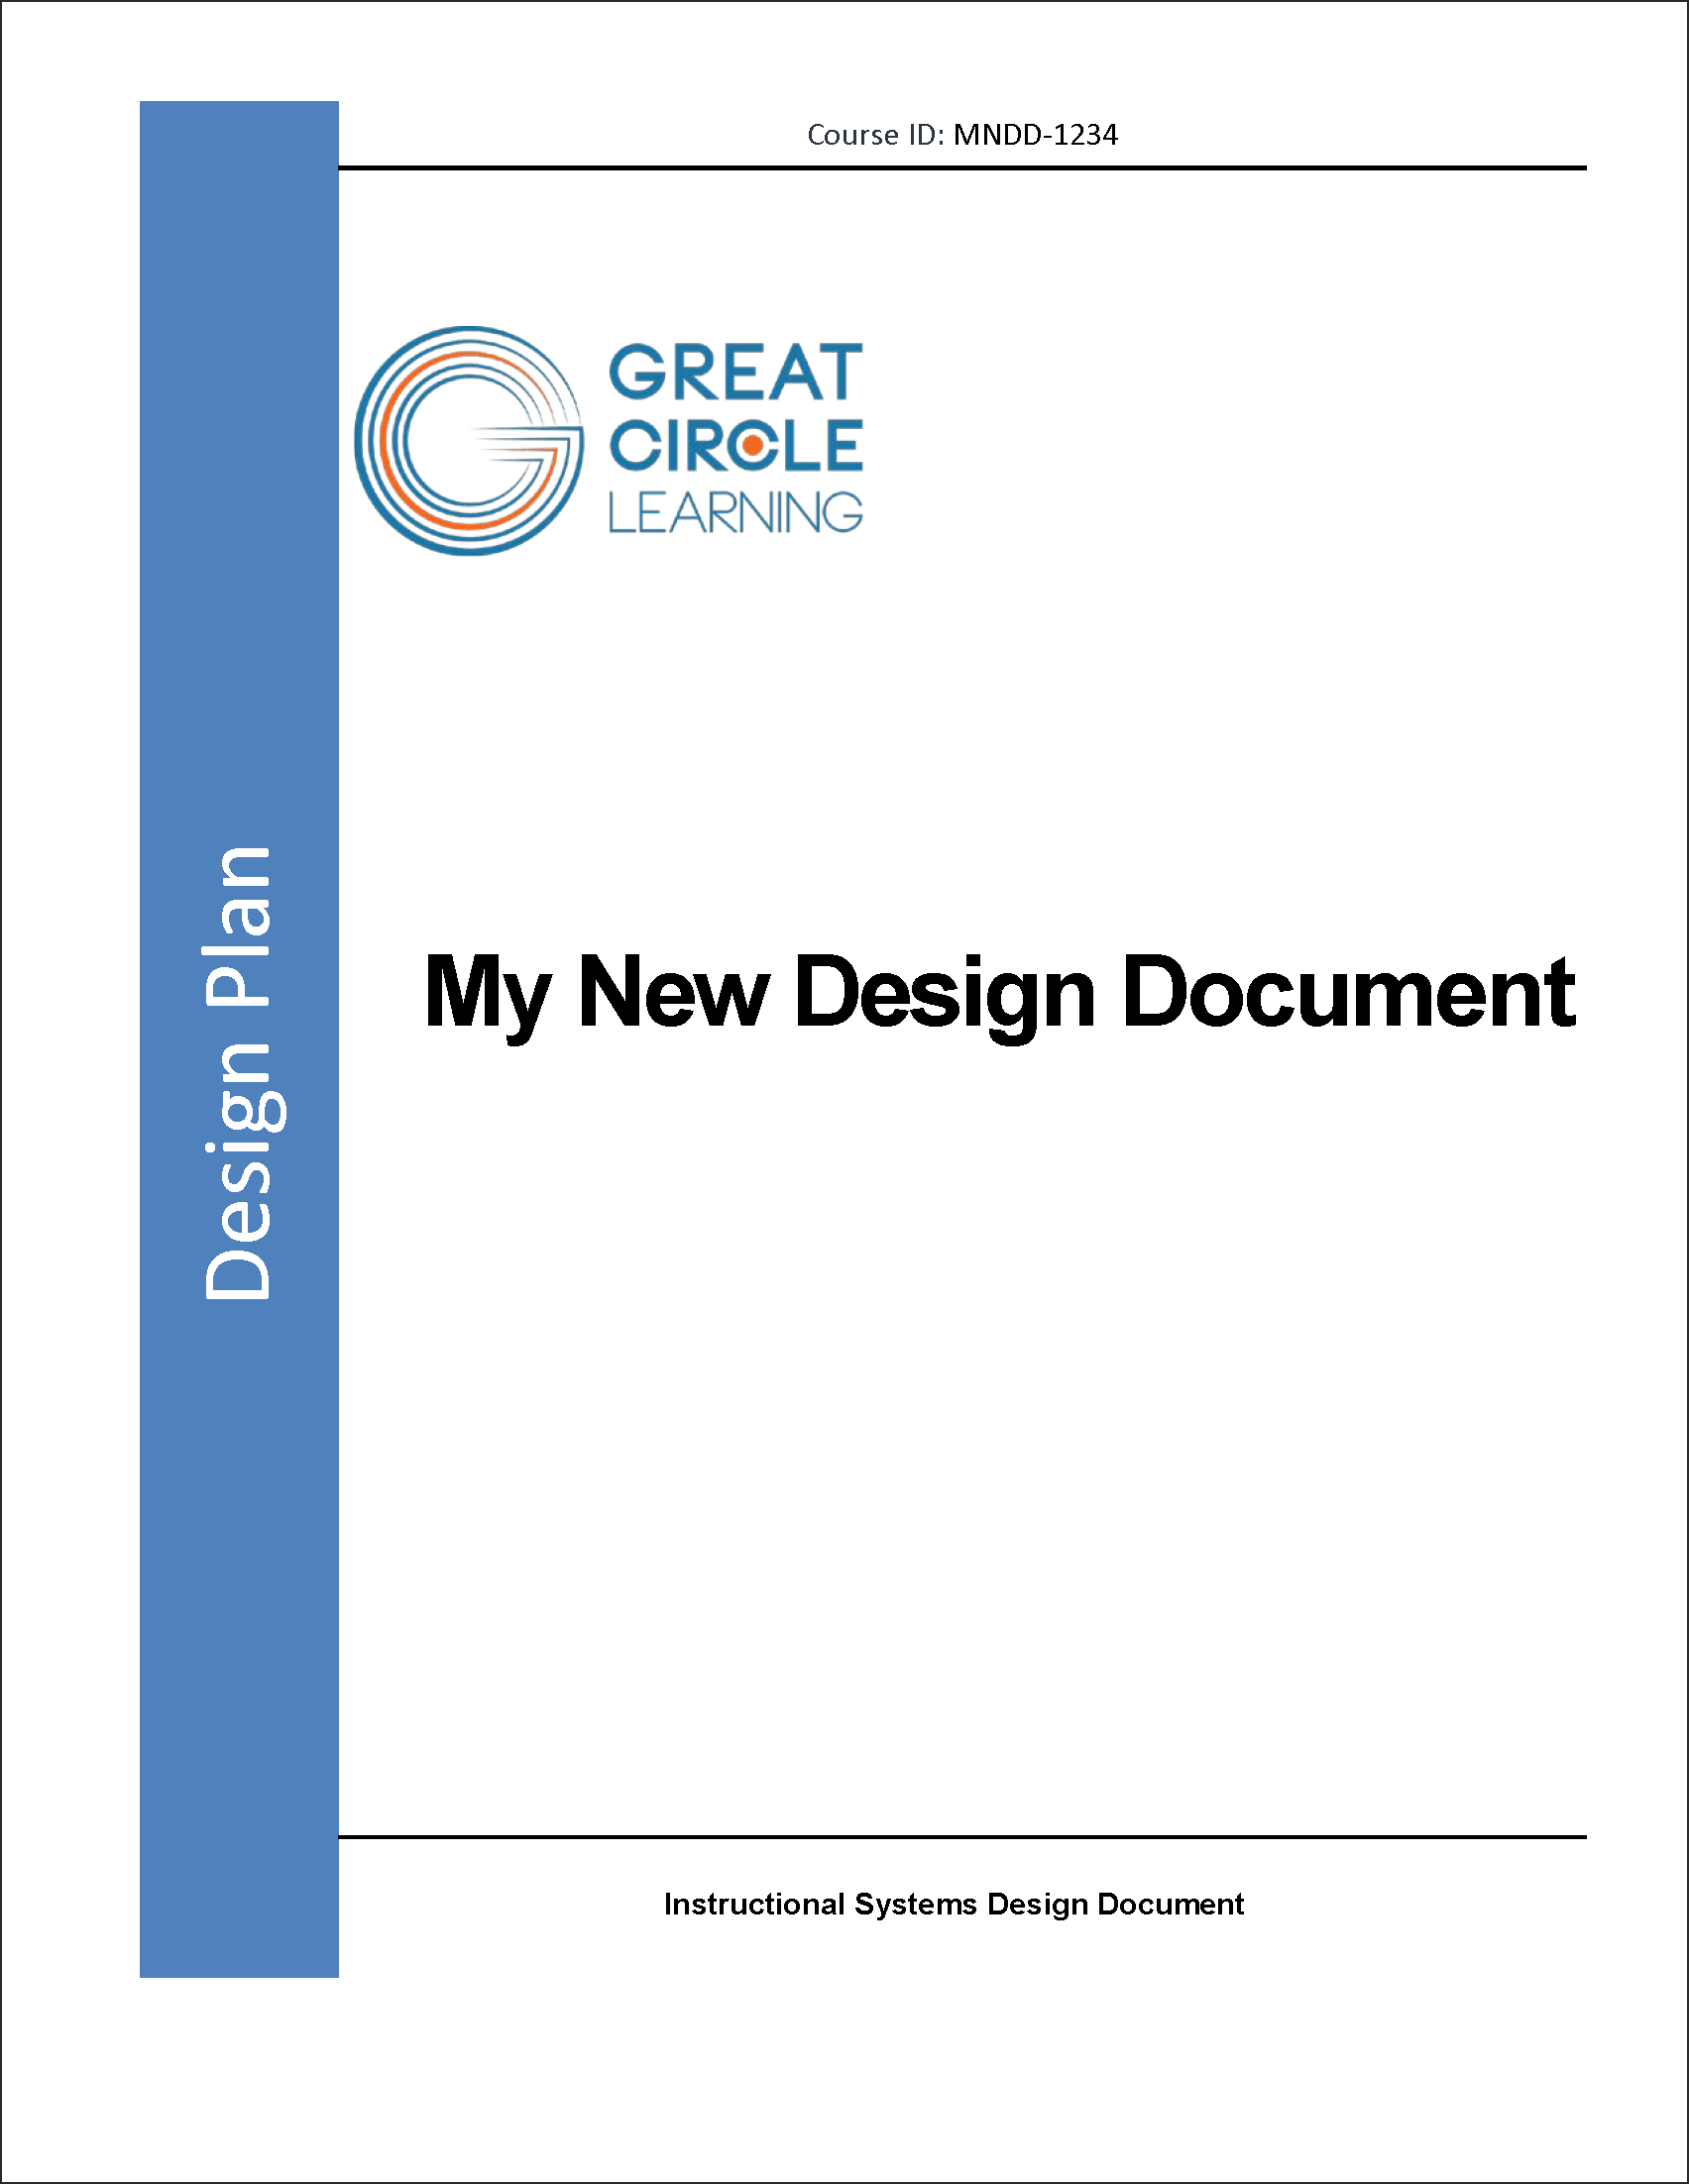 4-17-17-My New Design Document_Page_1.png